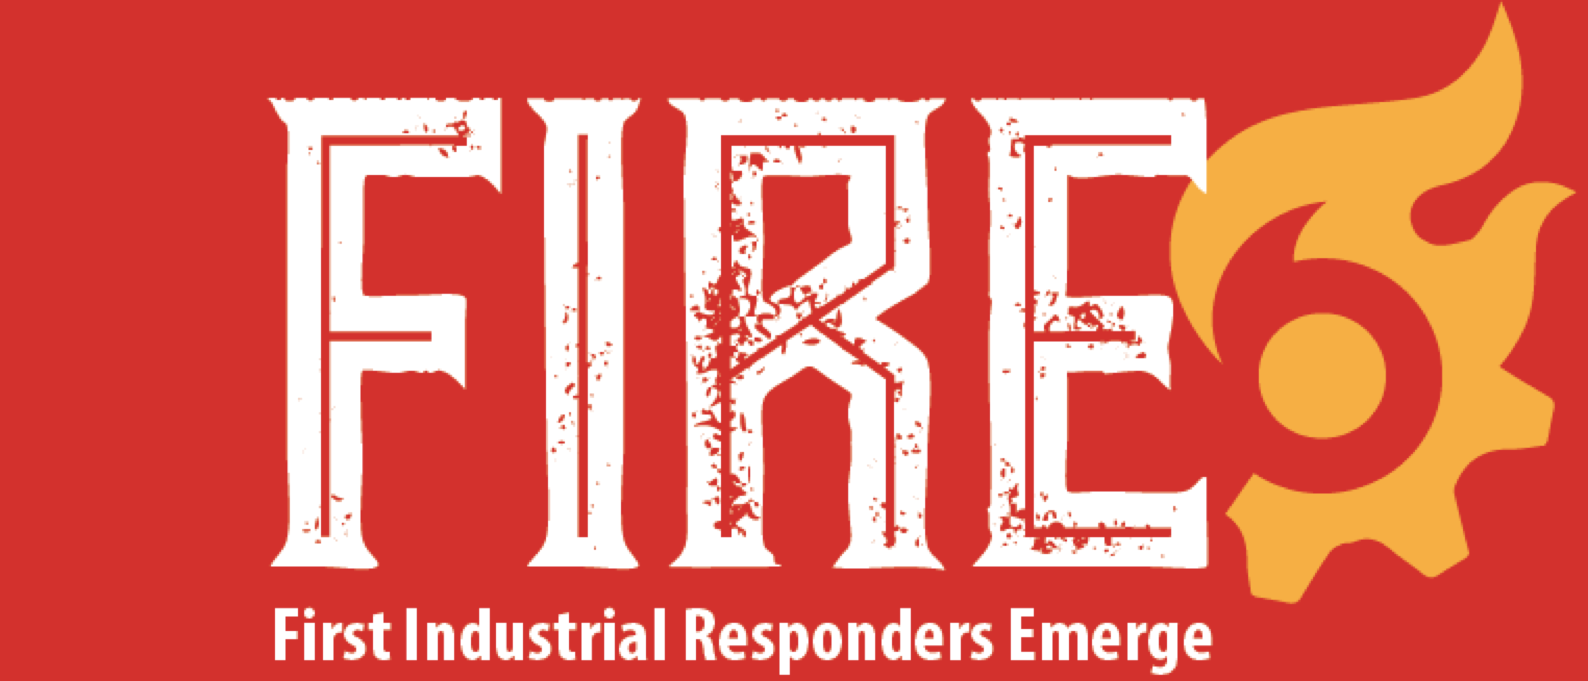 mHUB Presents, First Industrial Responders Emerge (FIRE) Panel Discussion: Trends in Product Innovation